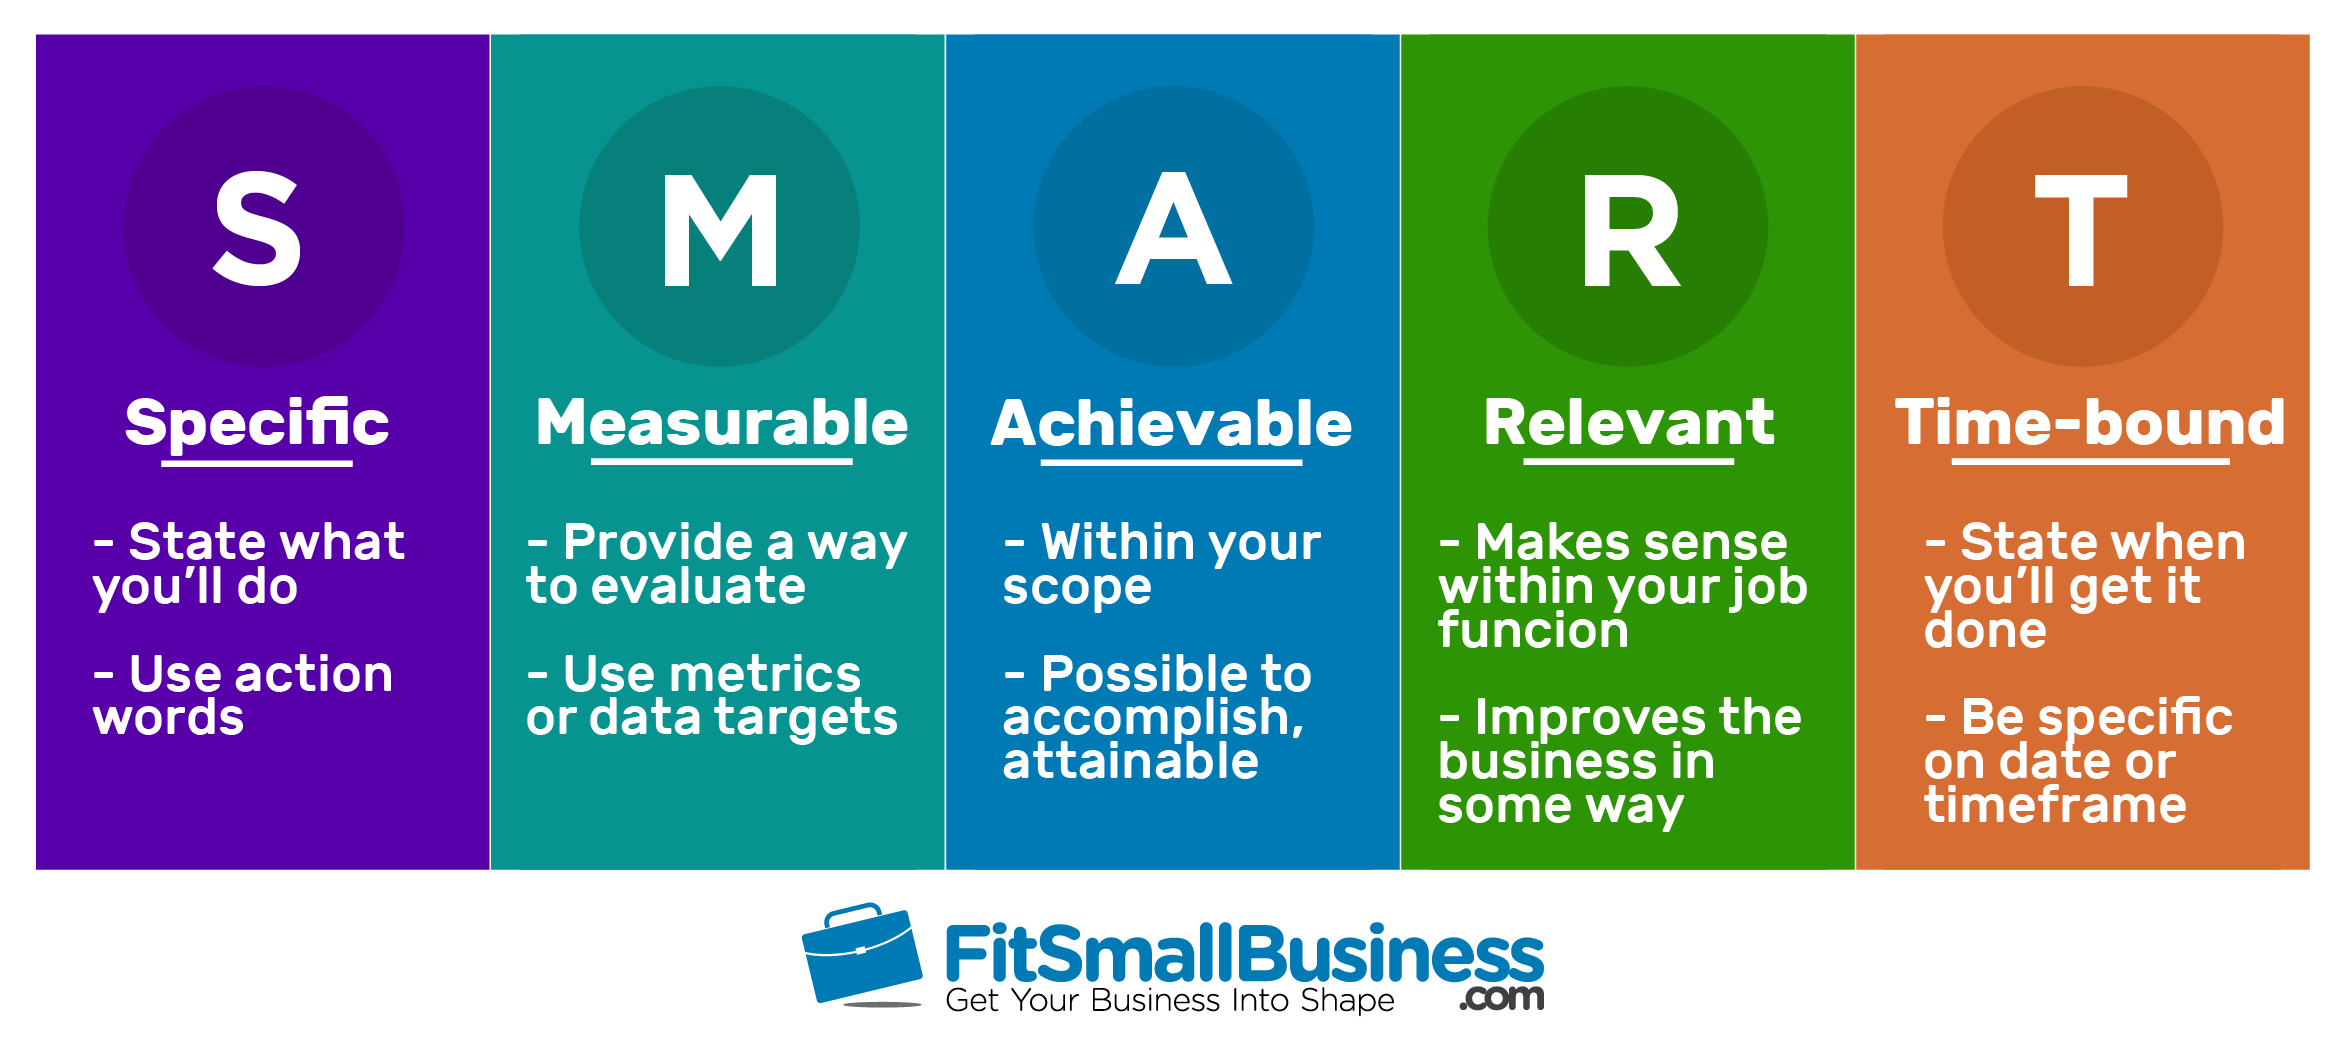 Specific Measurable Achievable Relevant Time-bound